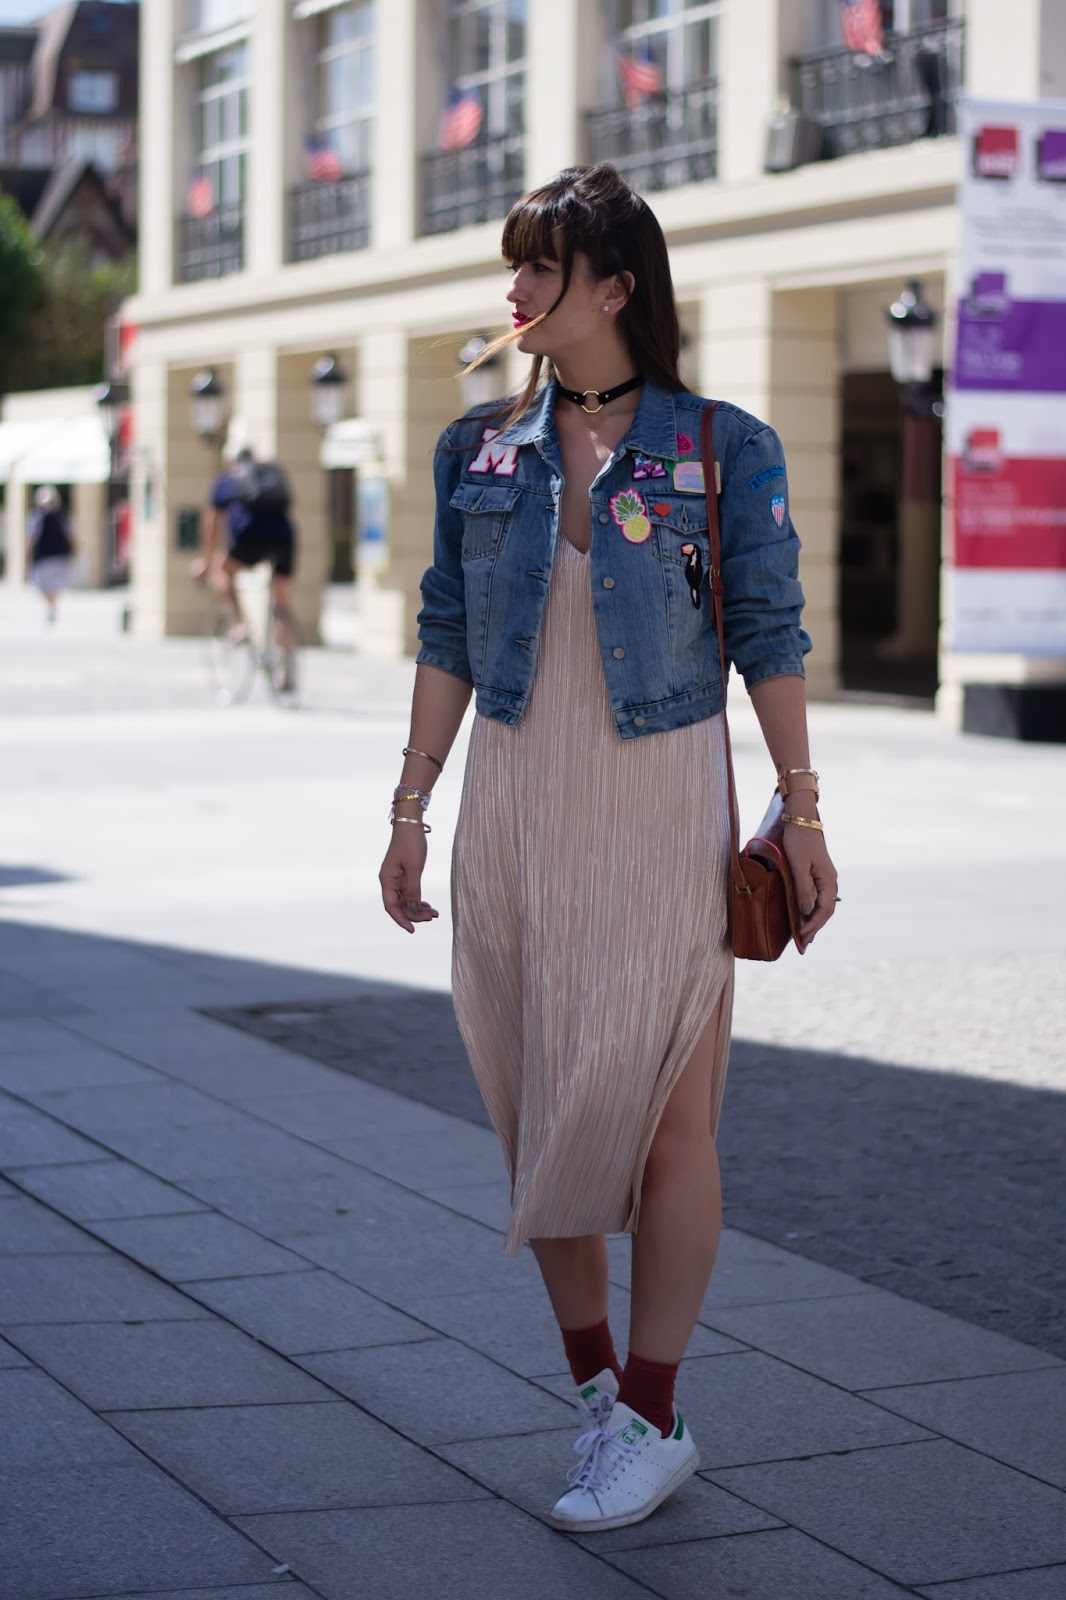 meetmeinparee, blogger, fashion, look, style, parisian style, street style